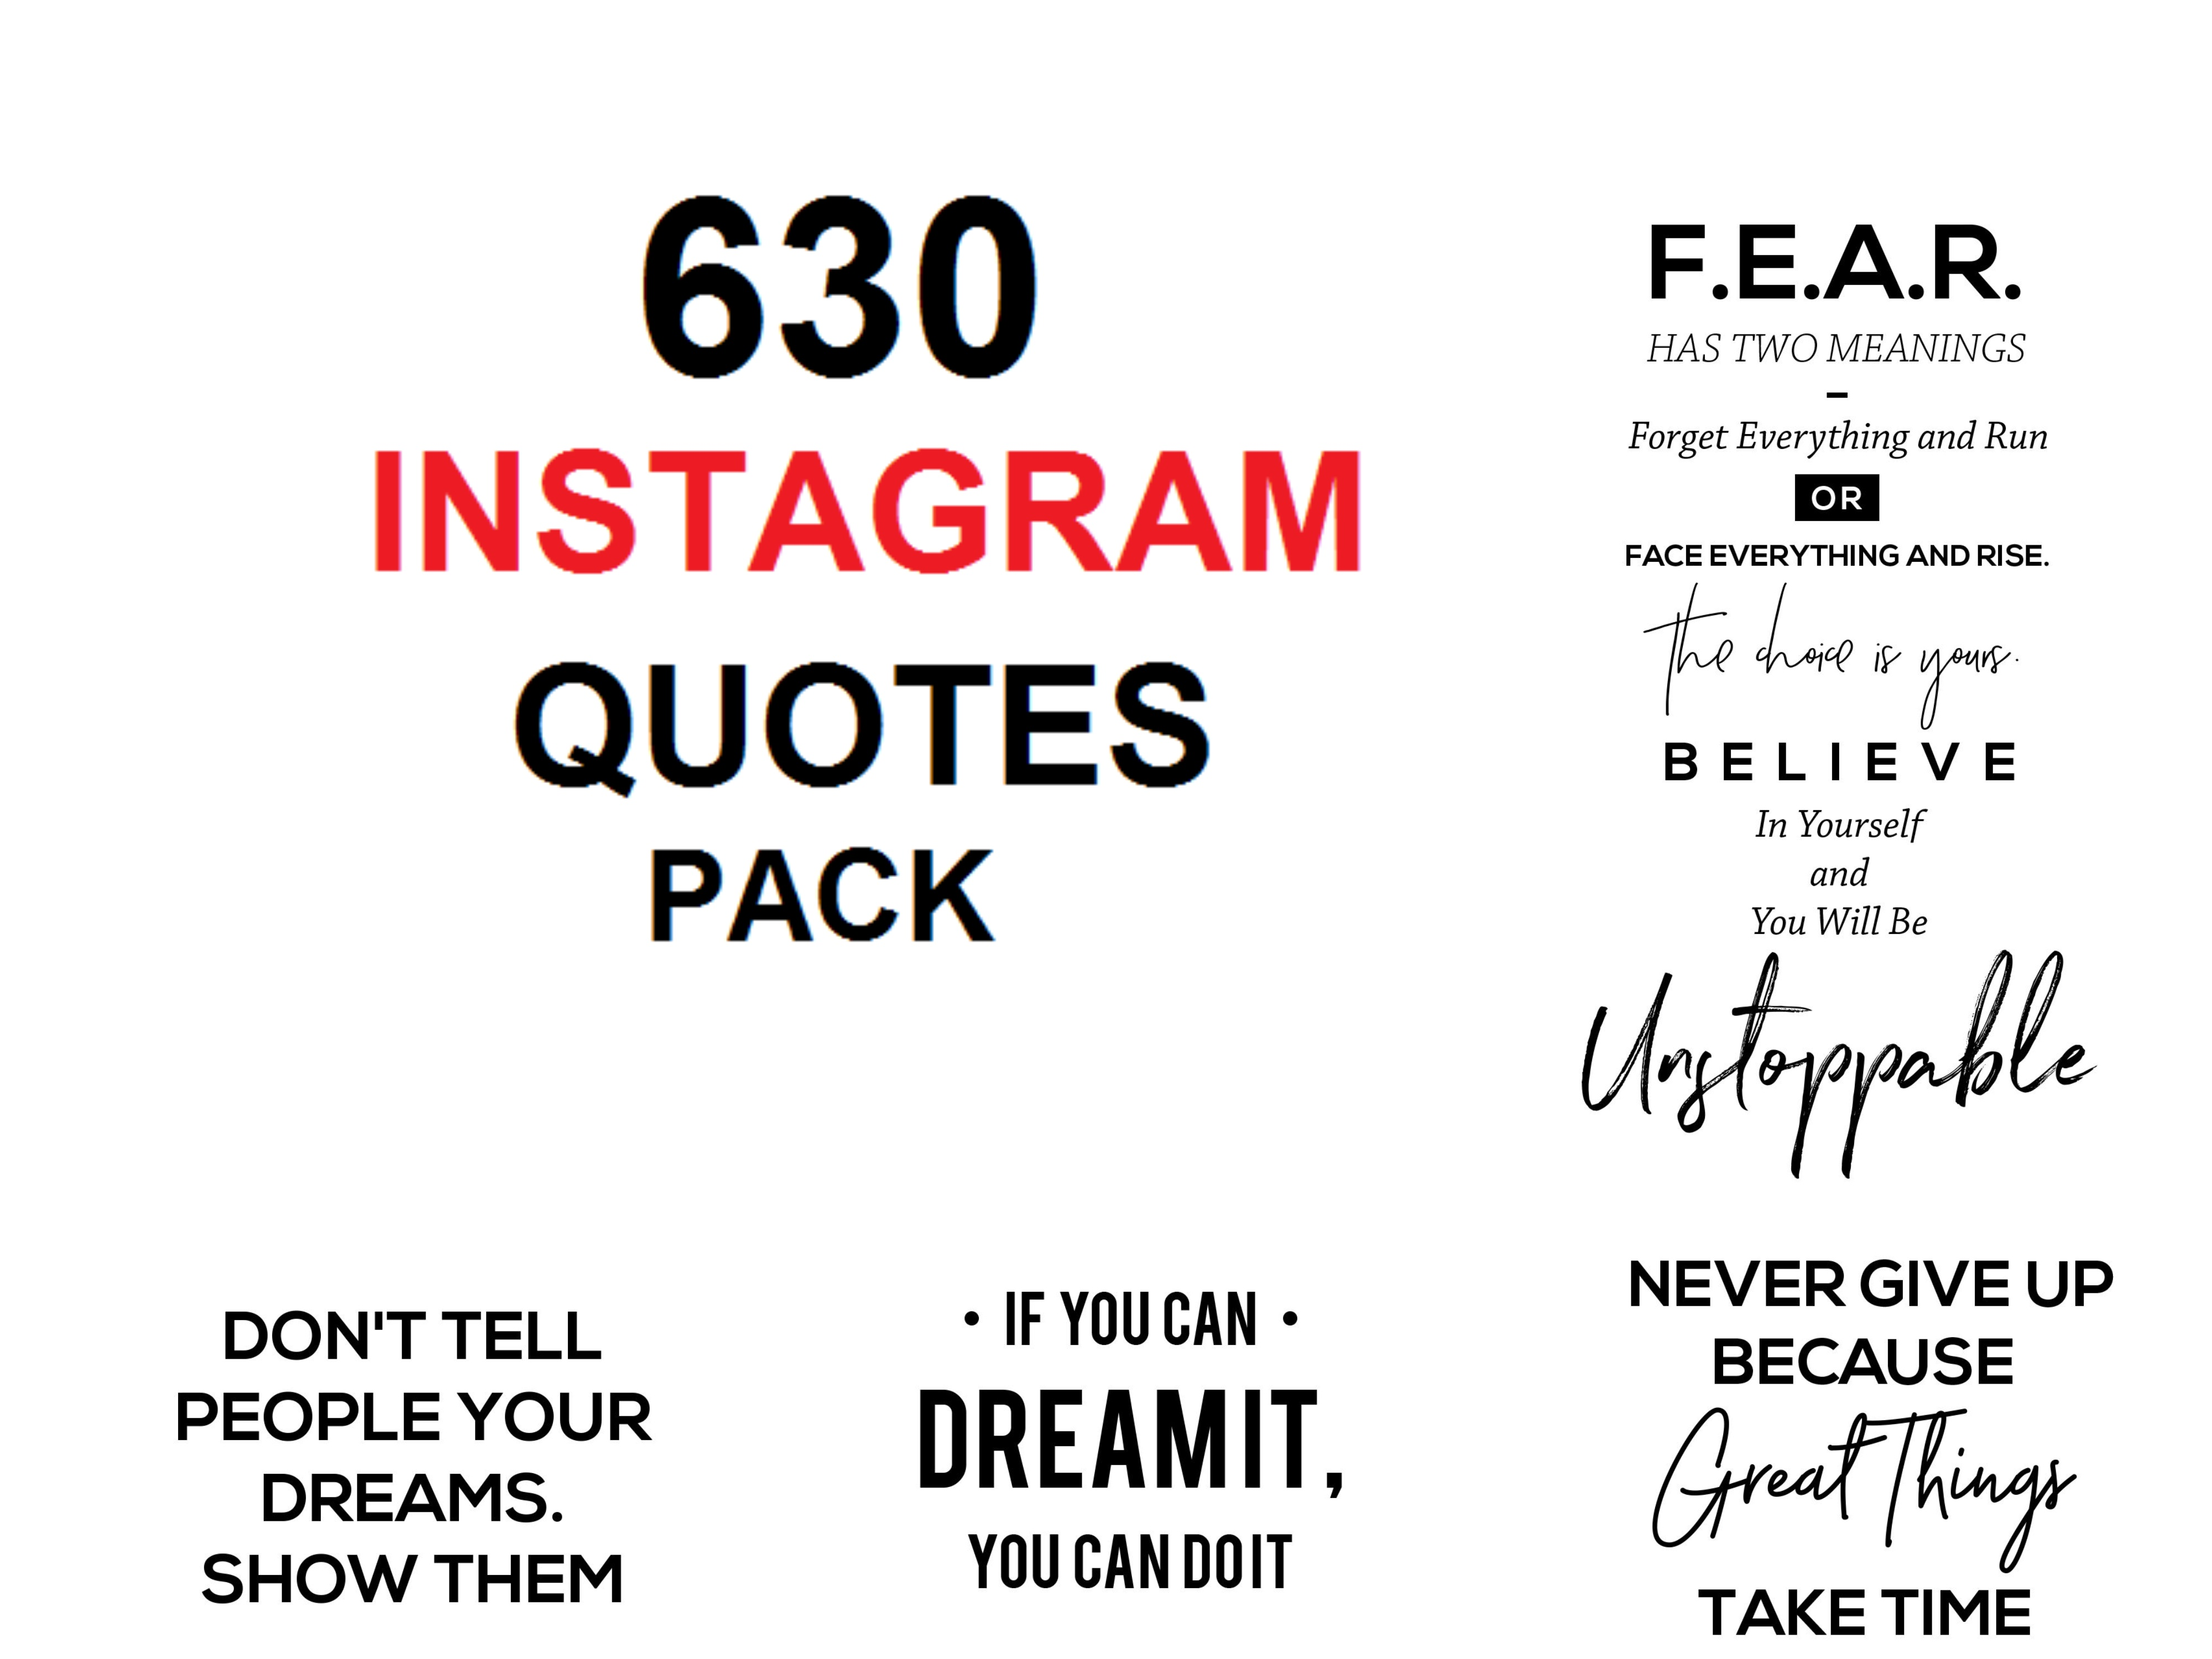 I will provide you with 630 engaging social quotes ready for instagram marketing